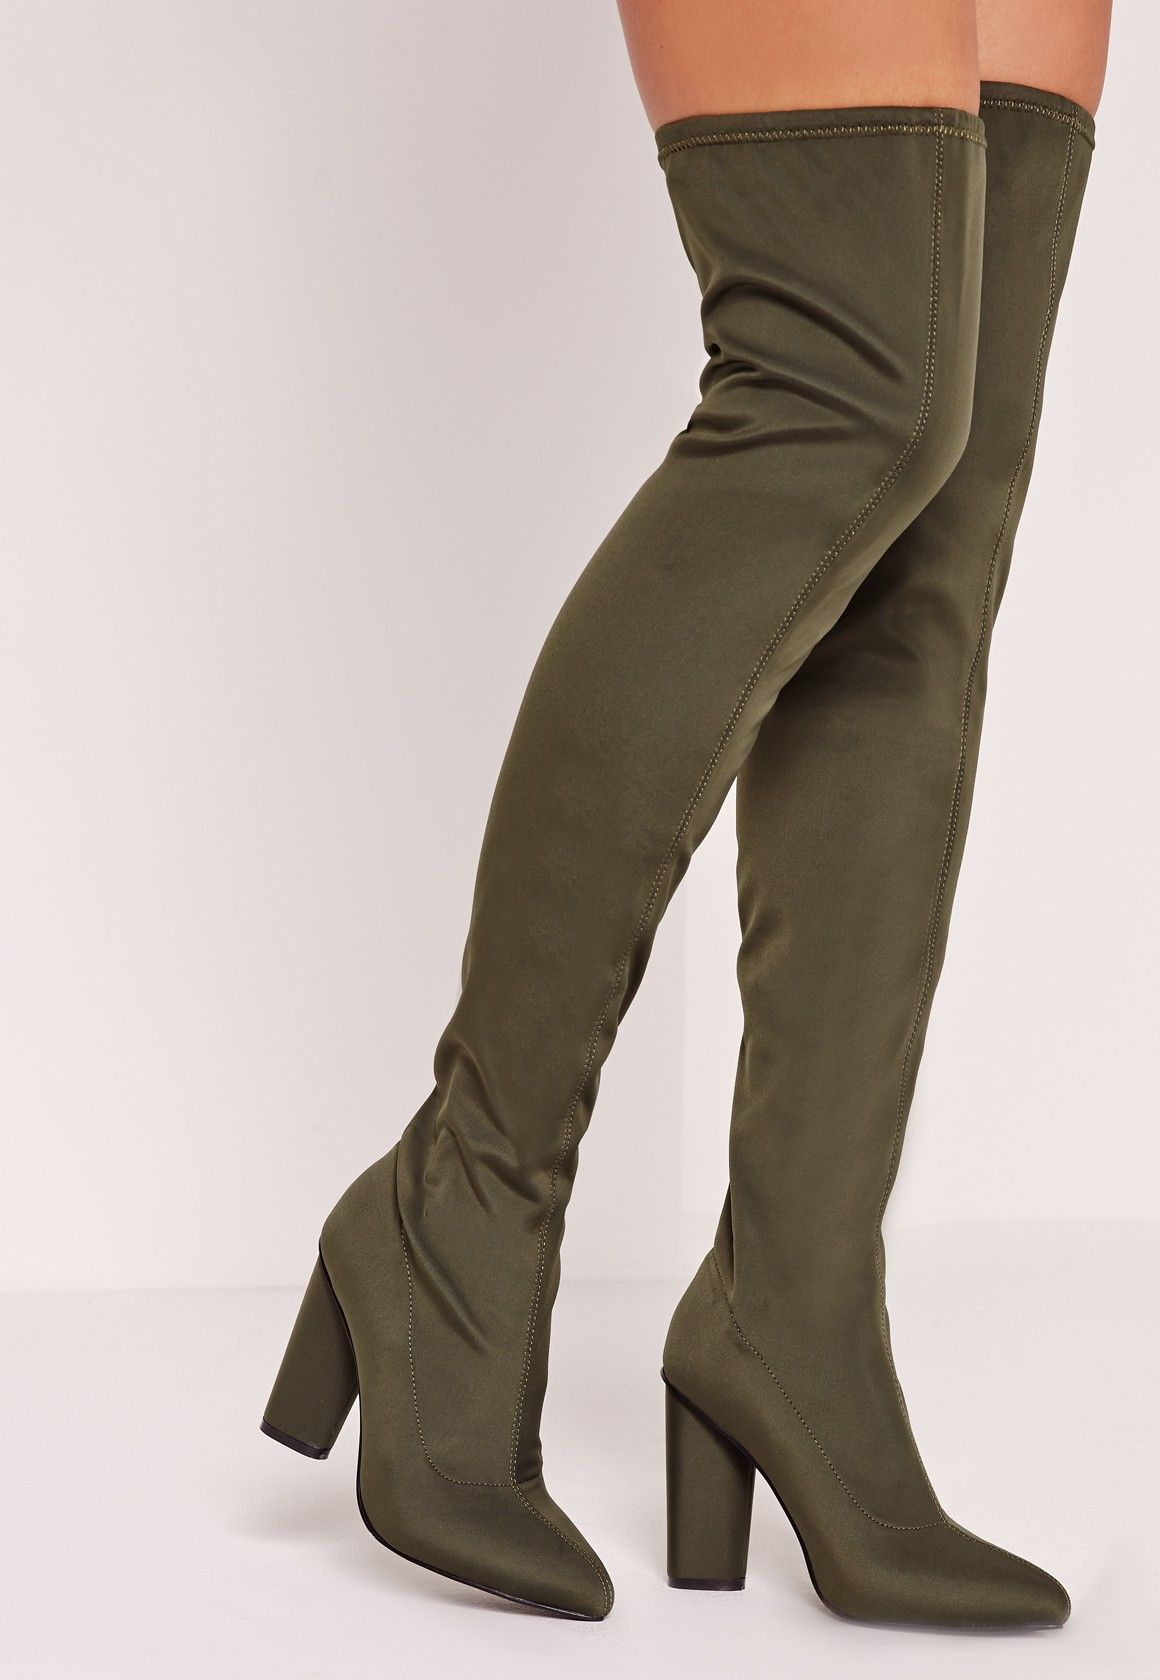 8f2ac212527 Missguided - Pointed Toe Neoprene Over The Knee Boot Khaki